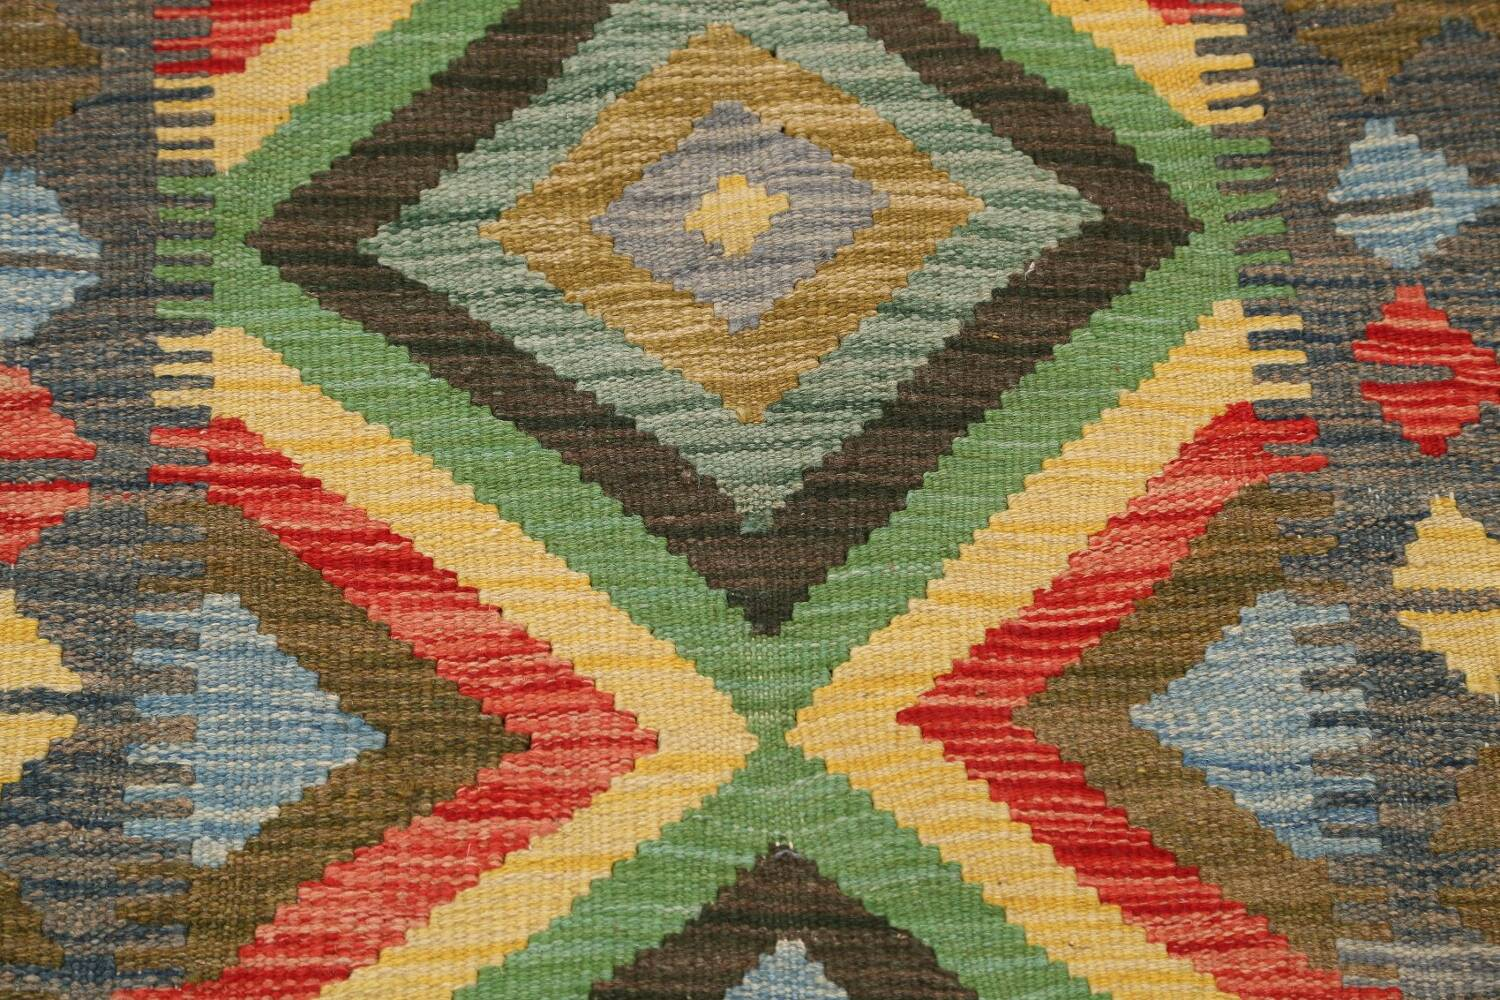 South-Western Reversible Kilim Oriental Area Rug 3x3 Square image 4